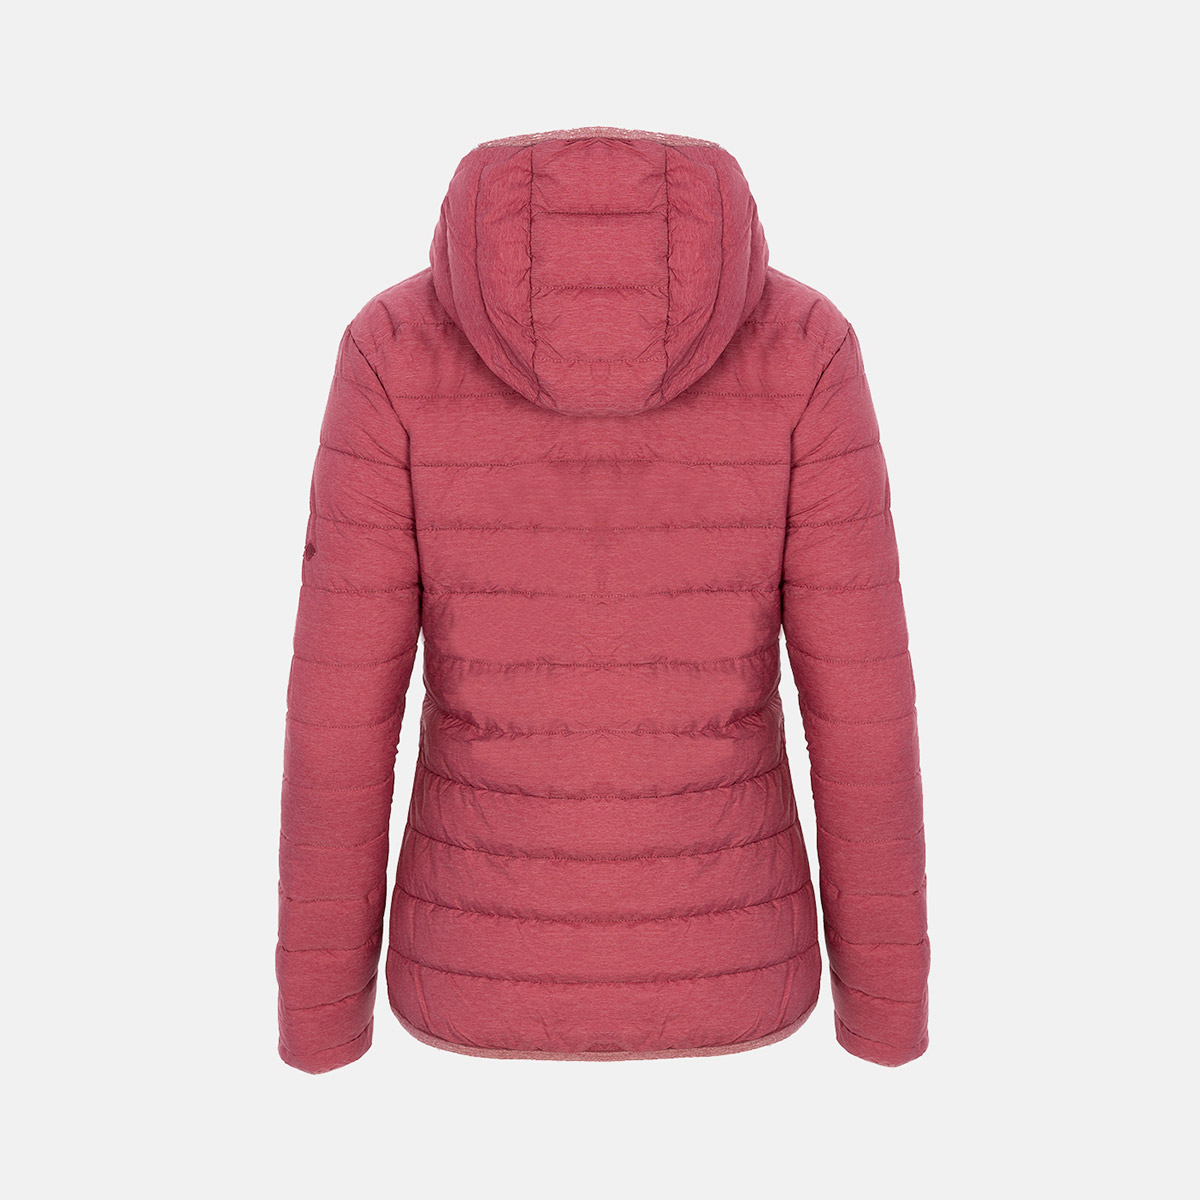 WOMAN'S LOZOYA PADDED JACKET RED